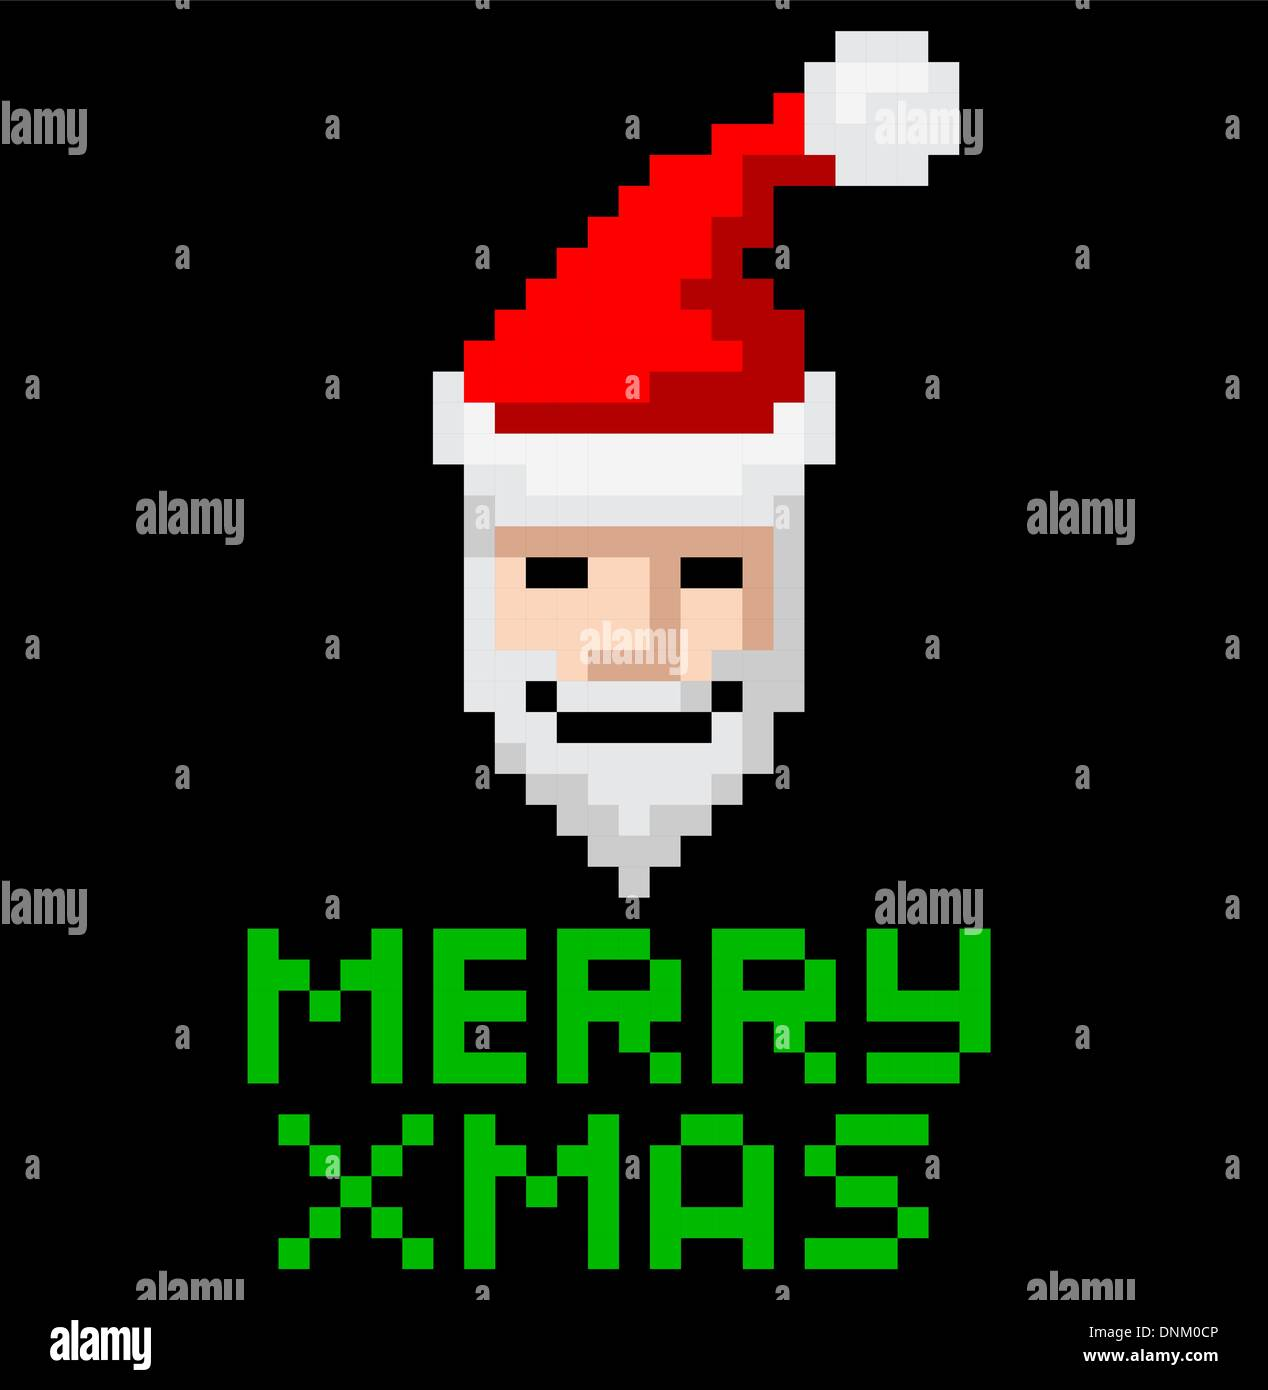 Retro Arcade Video Game Style Pixel Art Christmas Santa With Merry